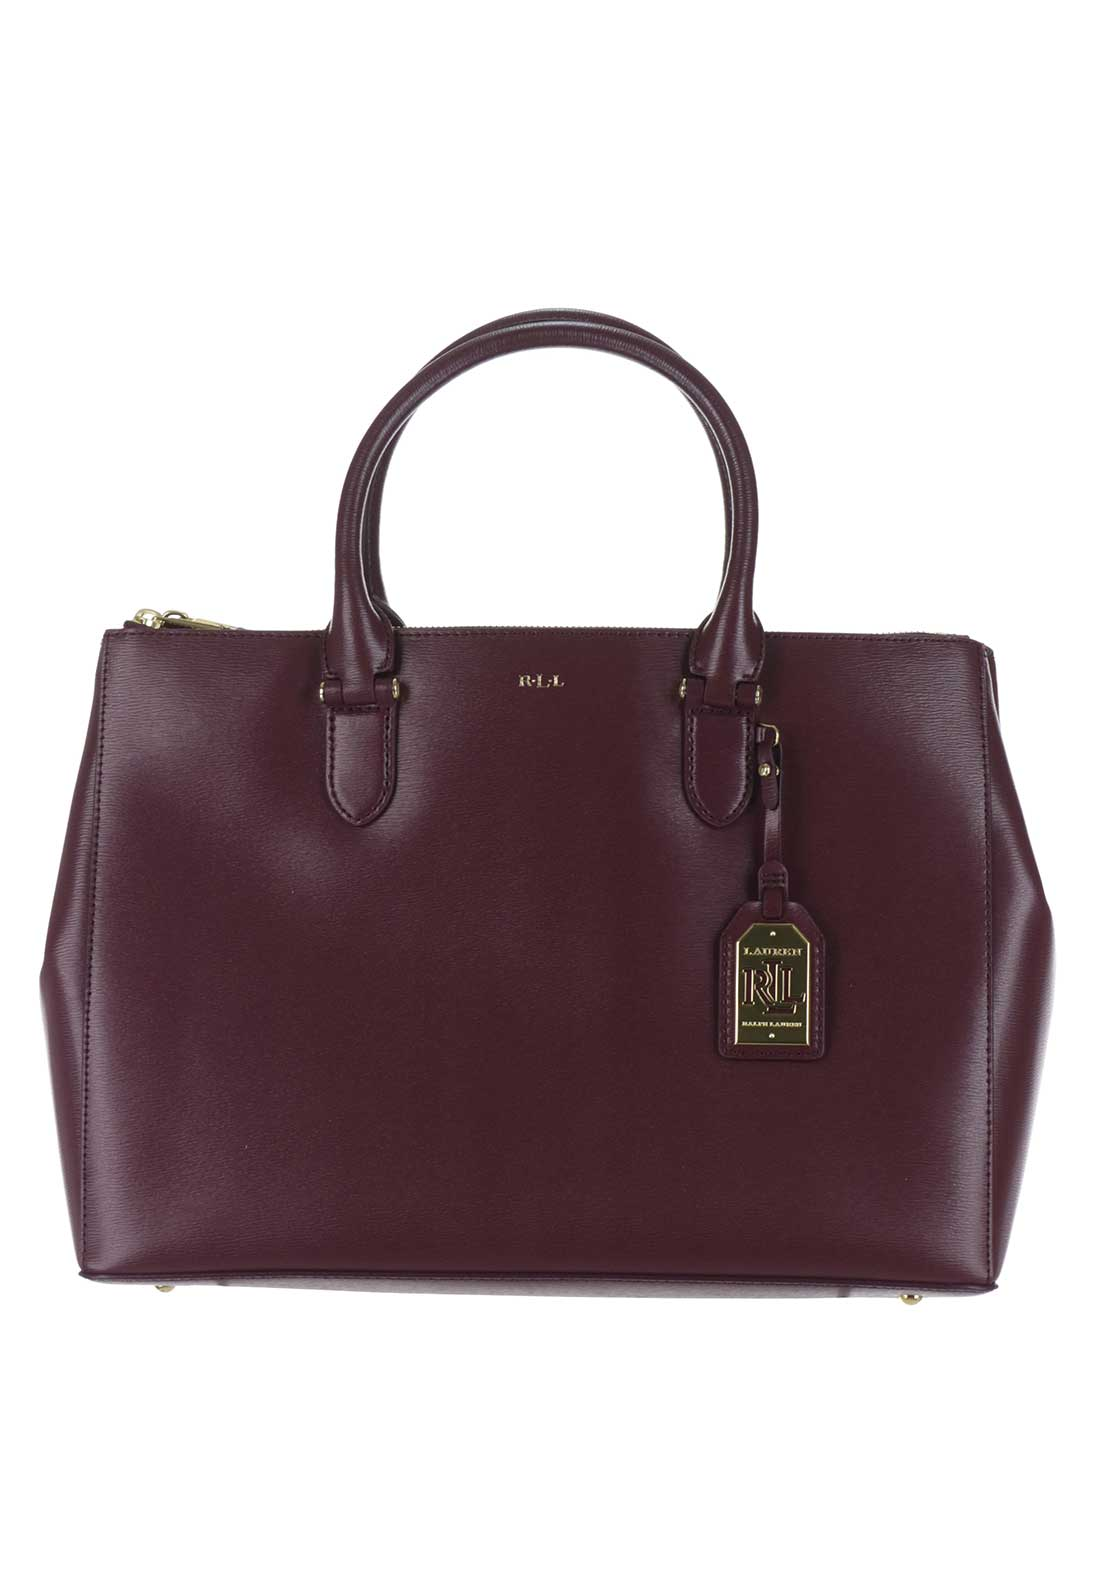 Lauren Ralph Lauren Leather DB Zip Satchel Bag, Claret